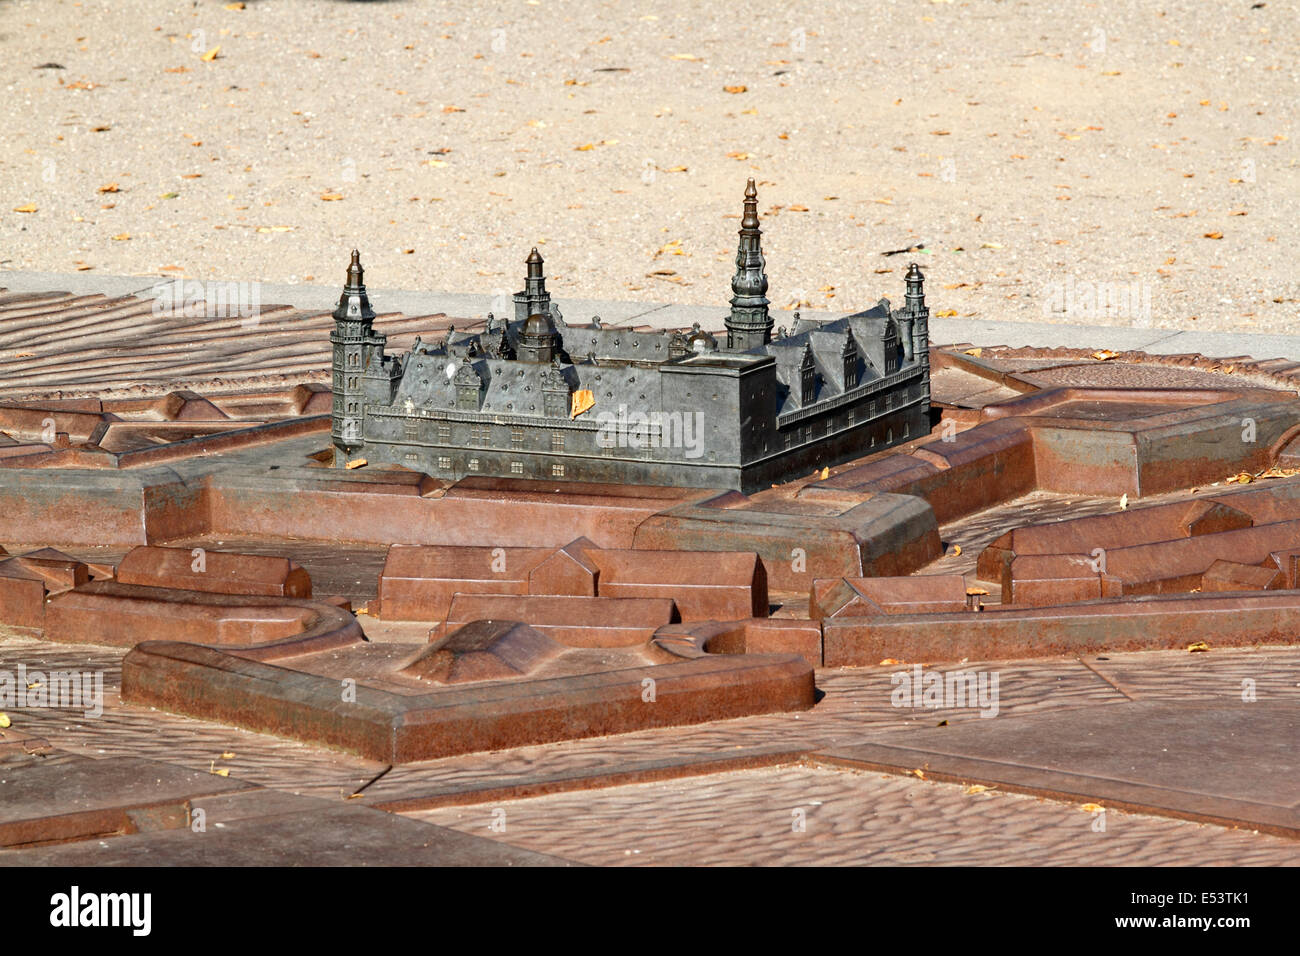 Model of Kronborg castle, embankment and moat in front of the real thing in Elsinore, Helsingør, Denmark - Stock Image